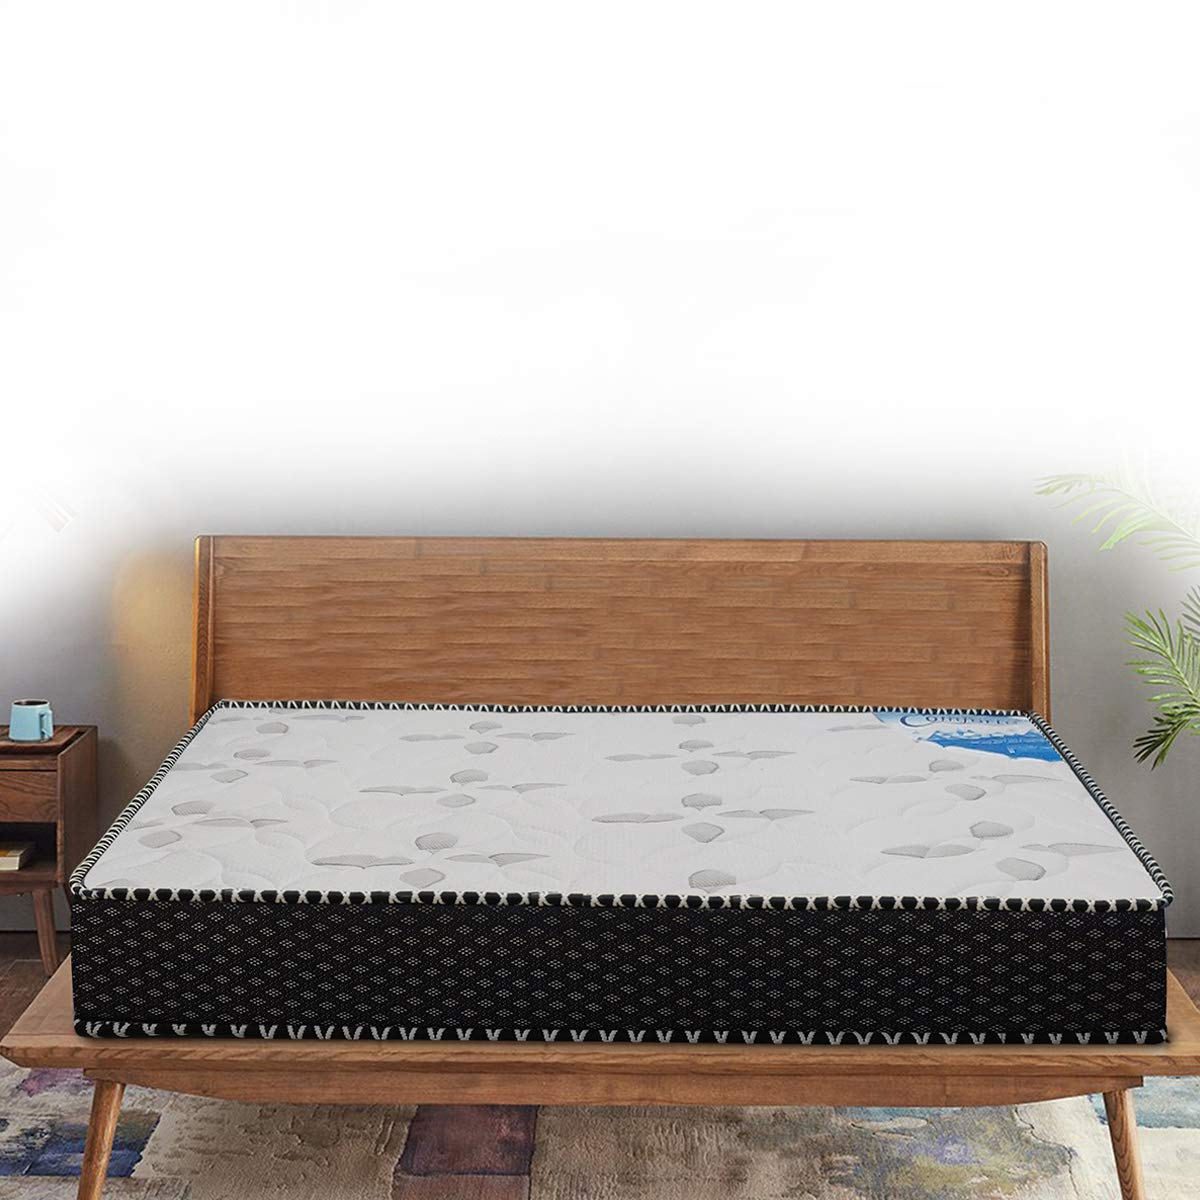 Comforto Pocket Spring Mattress (72 x 48 x 8 Inches)